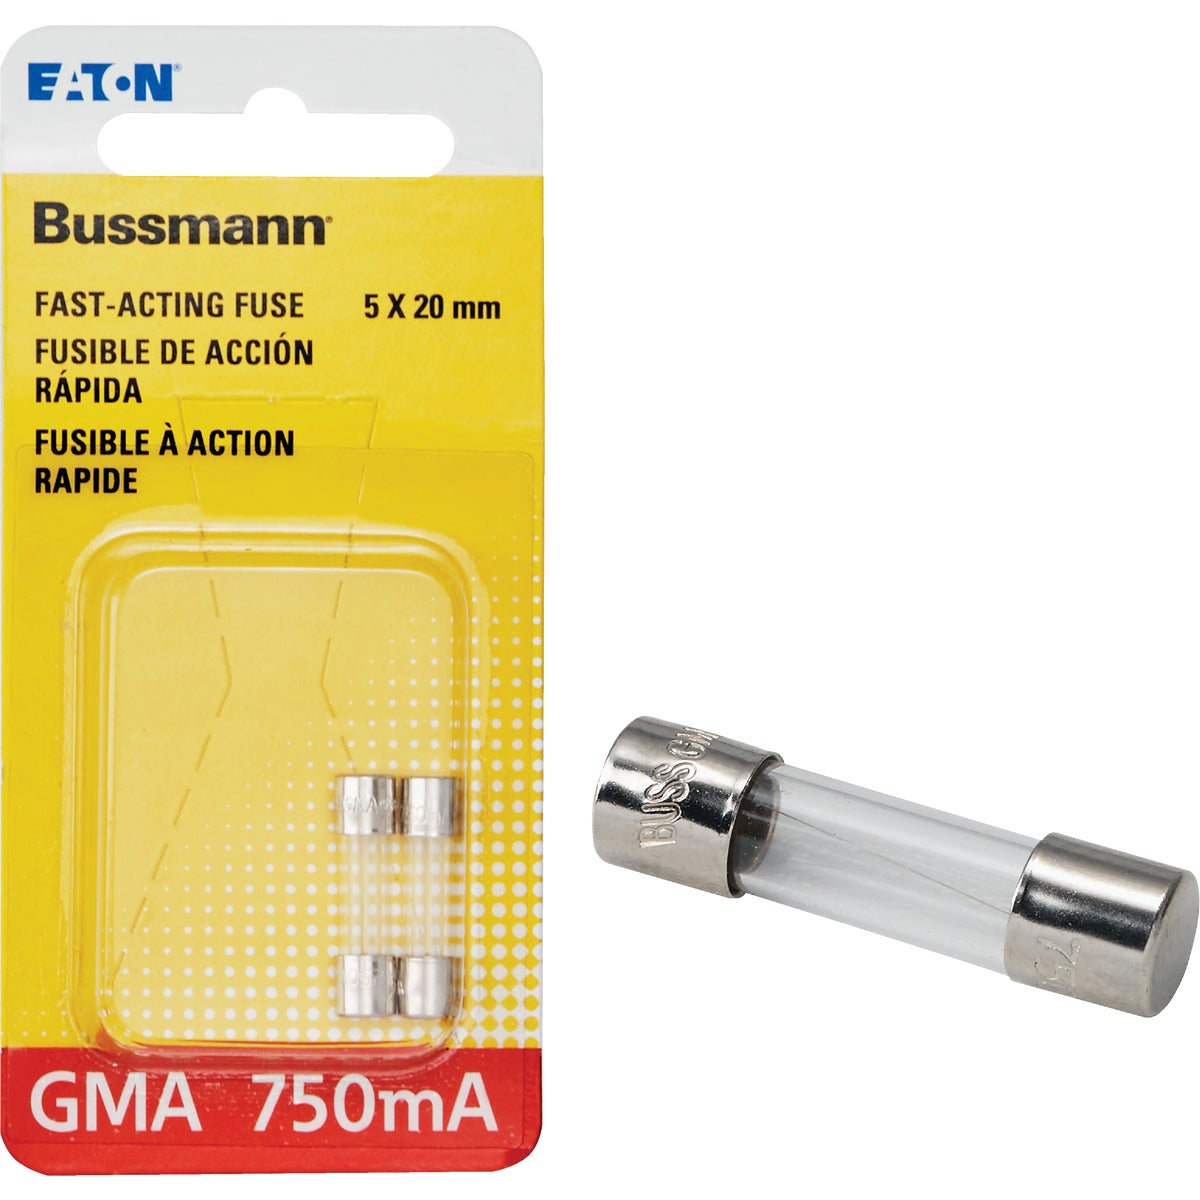 ELECTRONIC GLASS FUSE - BP/GMA-750MA by Bussmann Cooper